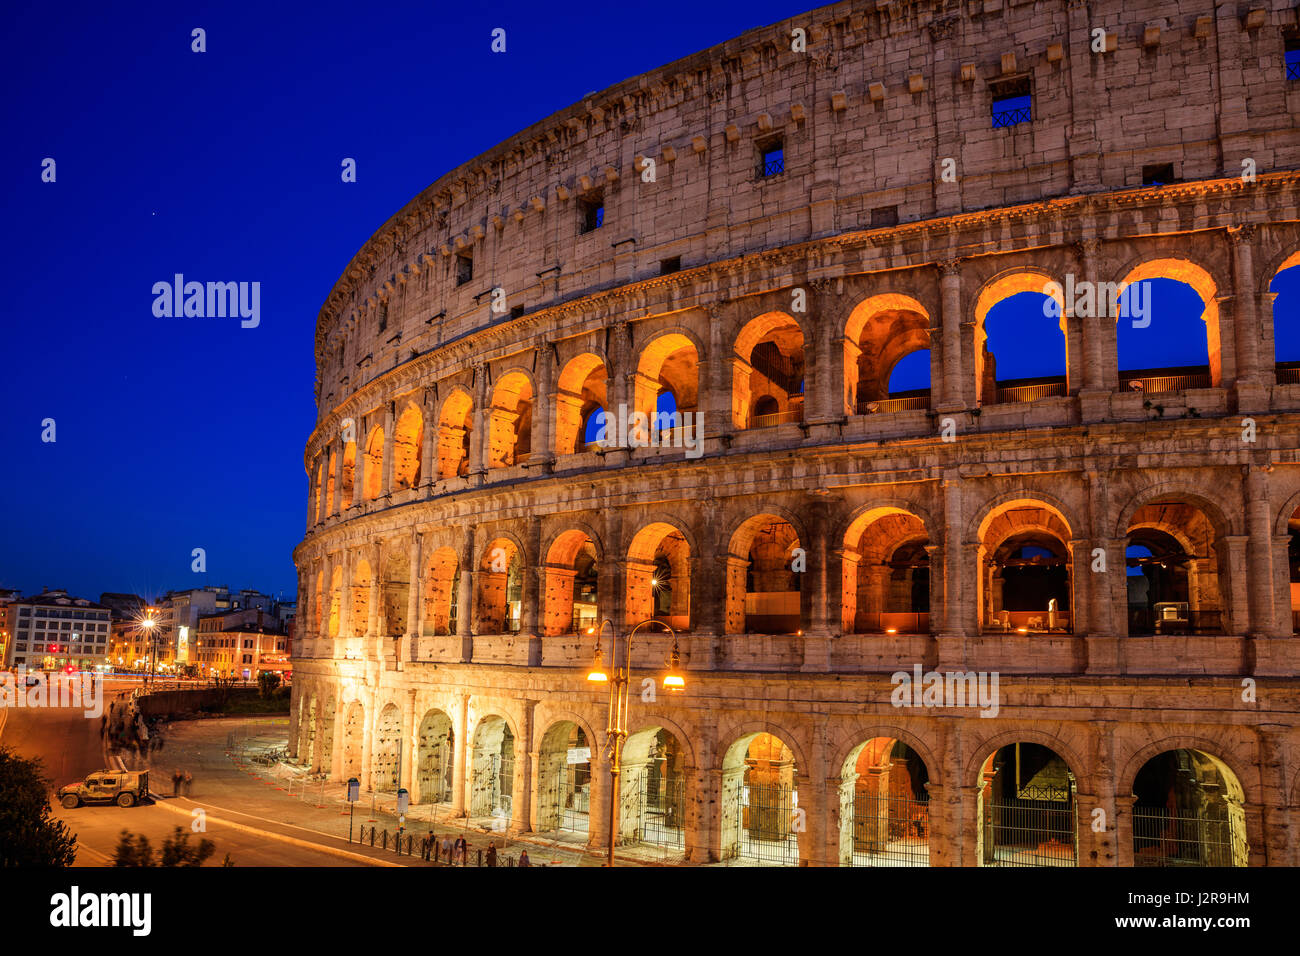 Colosseum view at night in Rome, Italy - Stock Image